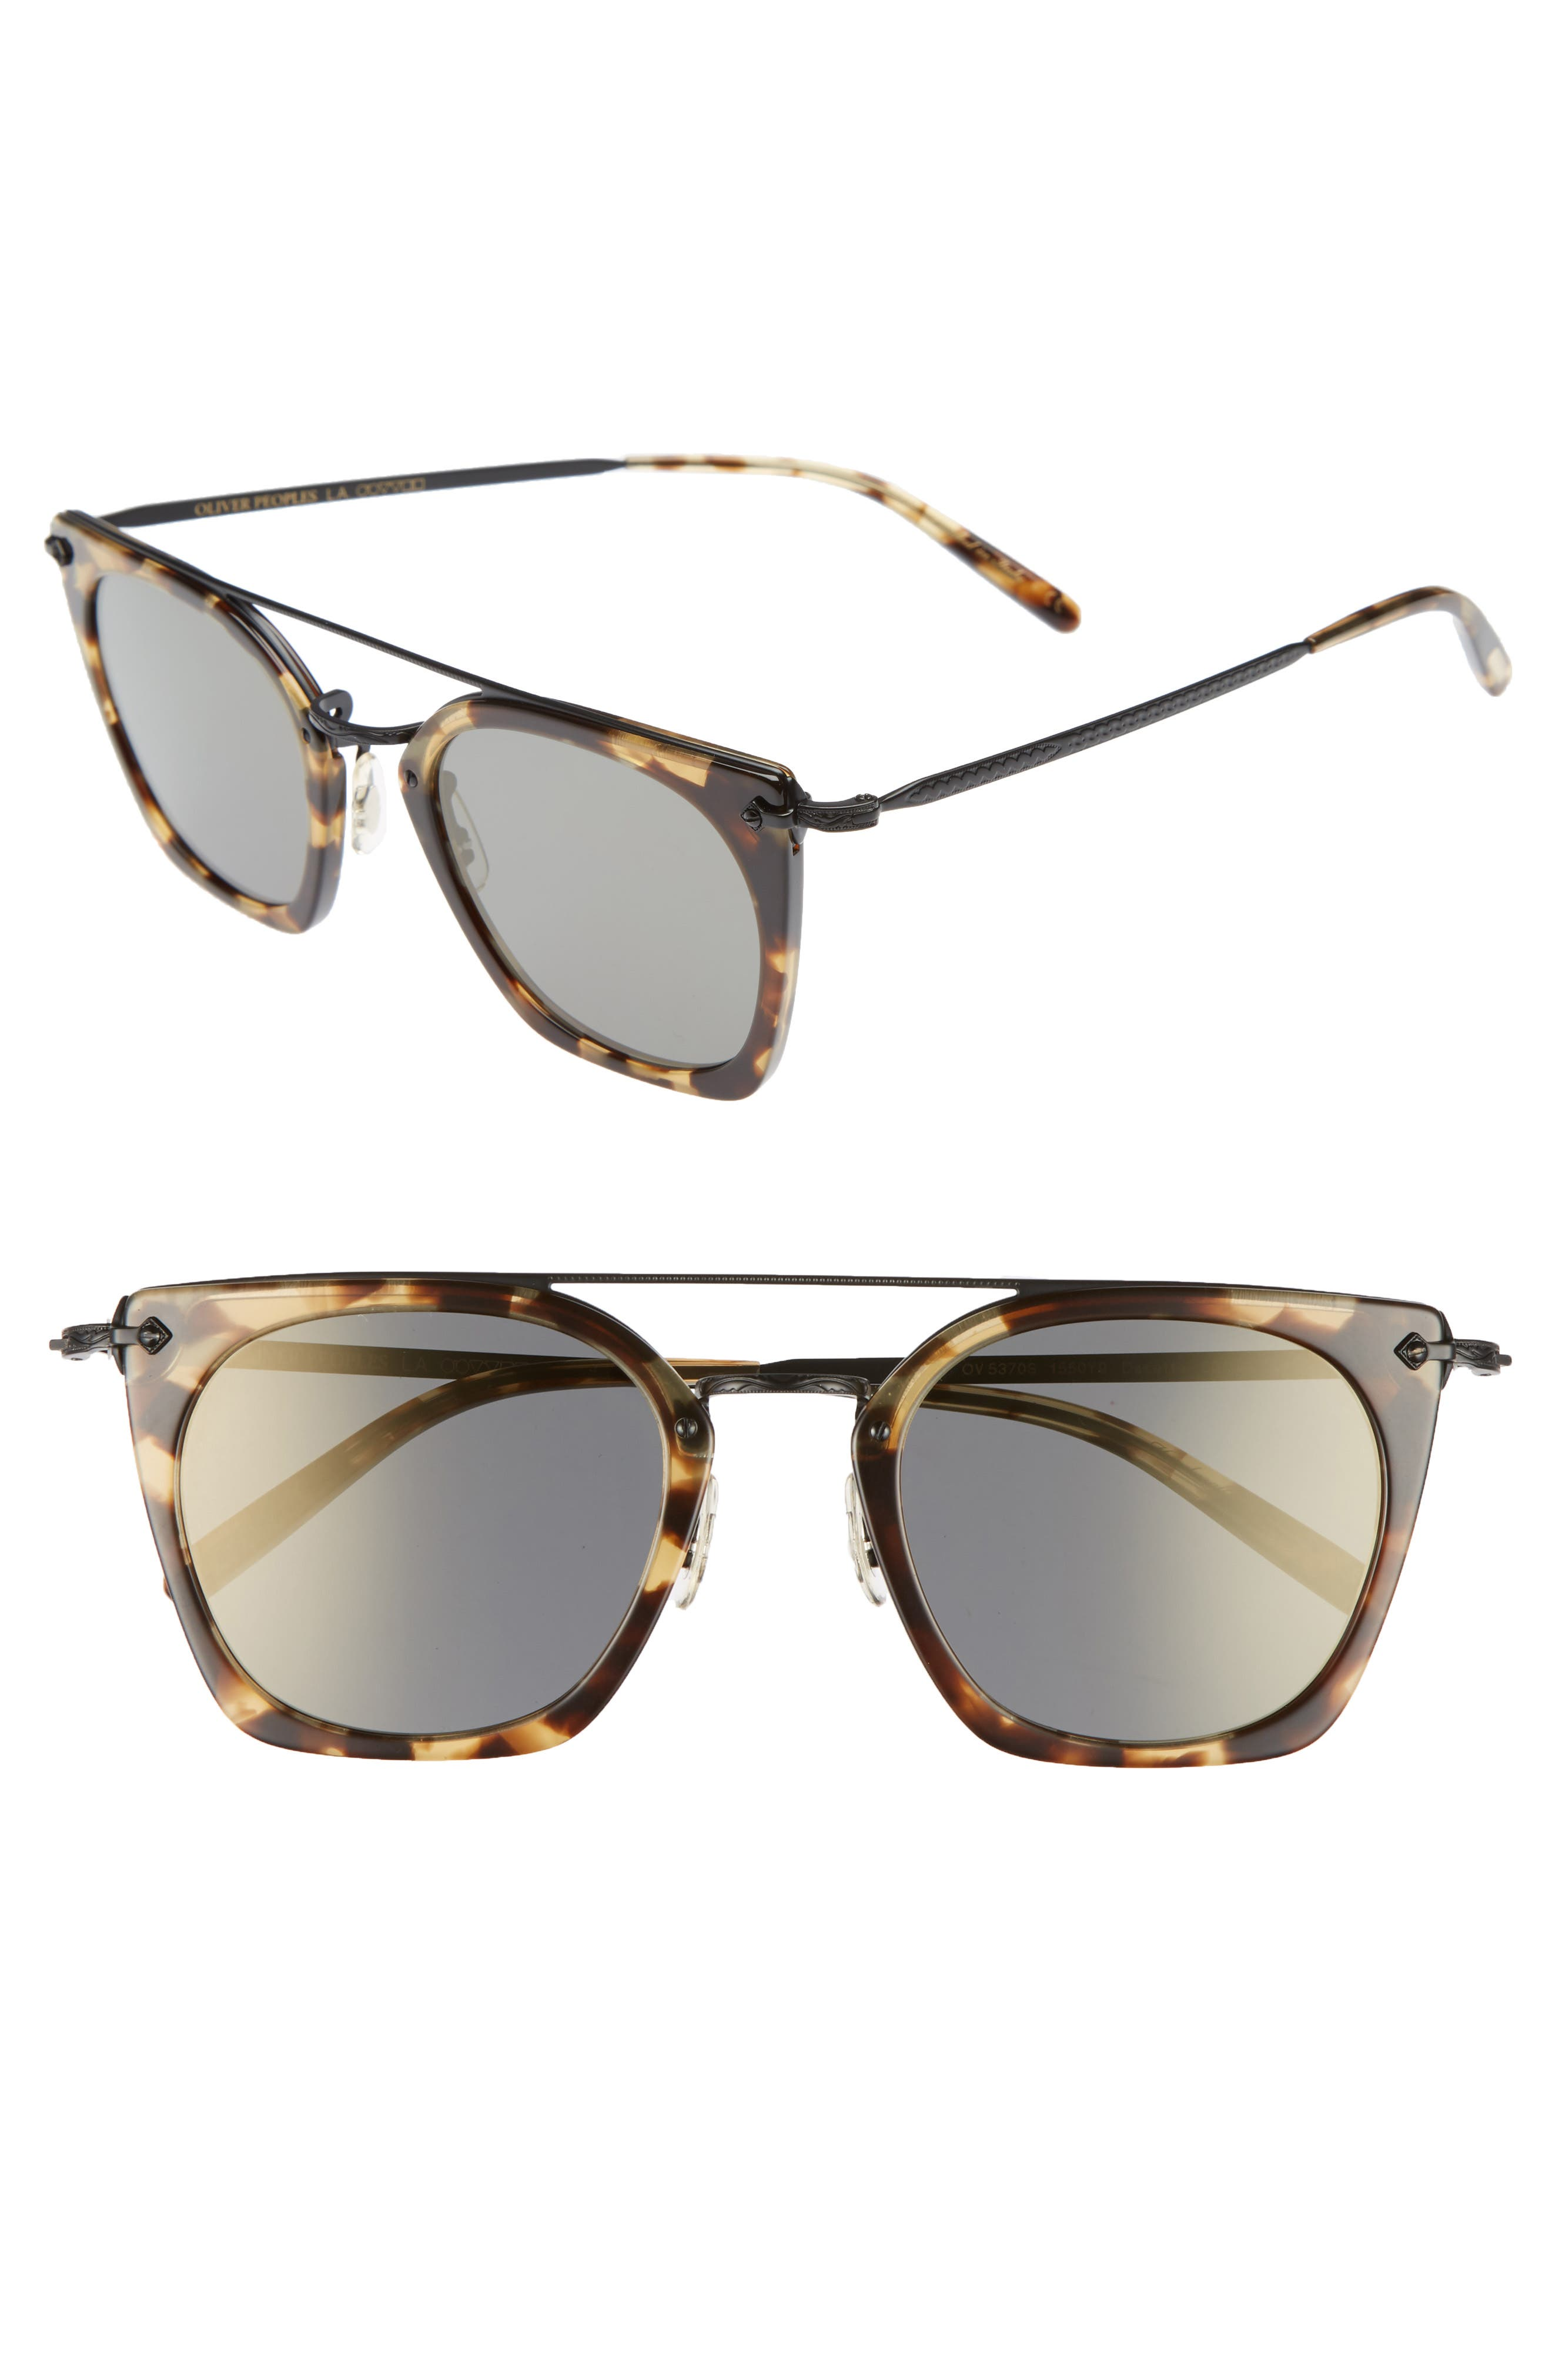 Dacette 50mm Square Aviator Sunglasses,                             Main thumbnail 1, color,                             Hickorty Tortoise